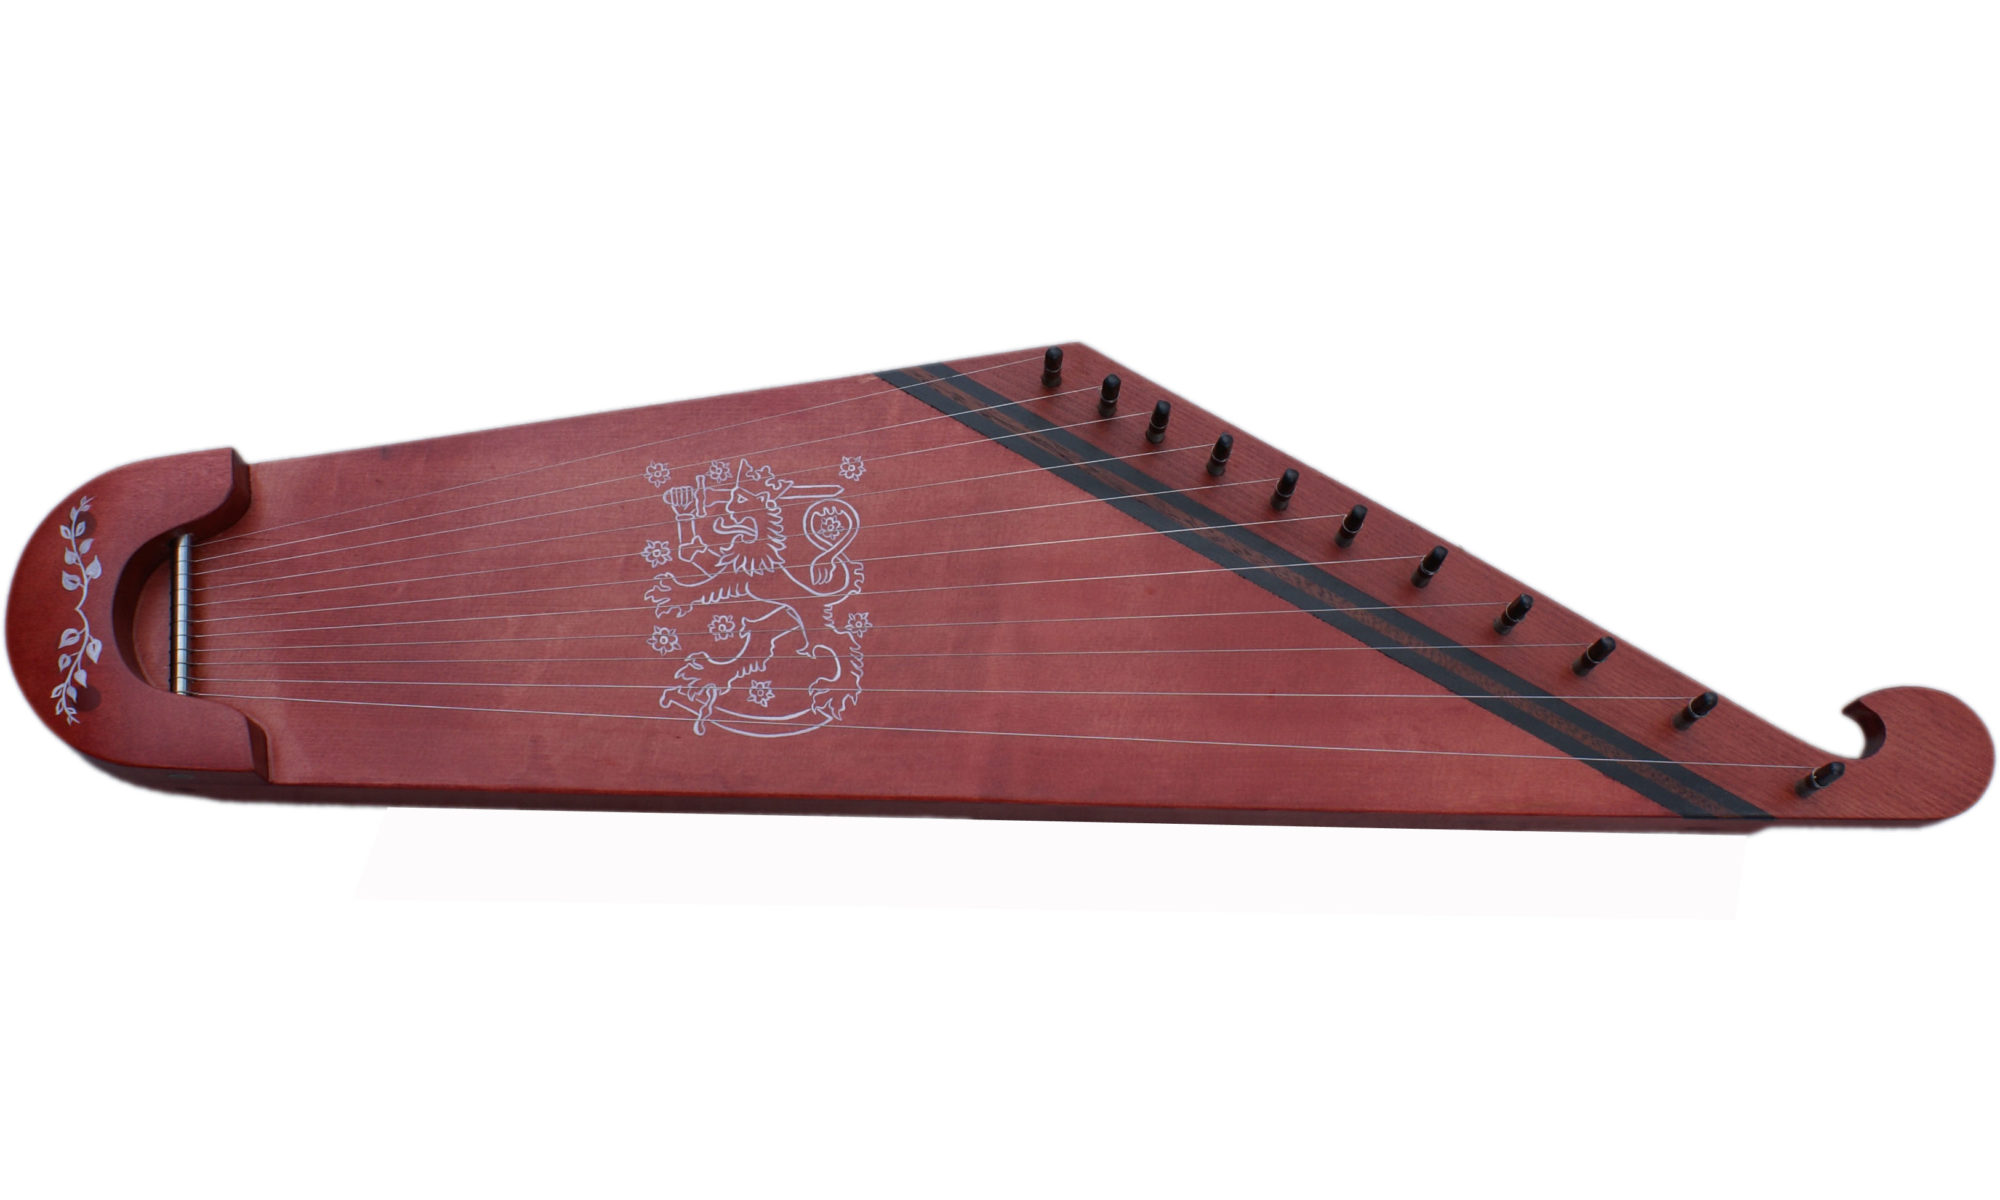 11 string KANTELE RED with Finnish coat of arms on the top.